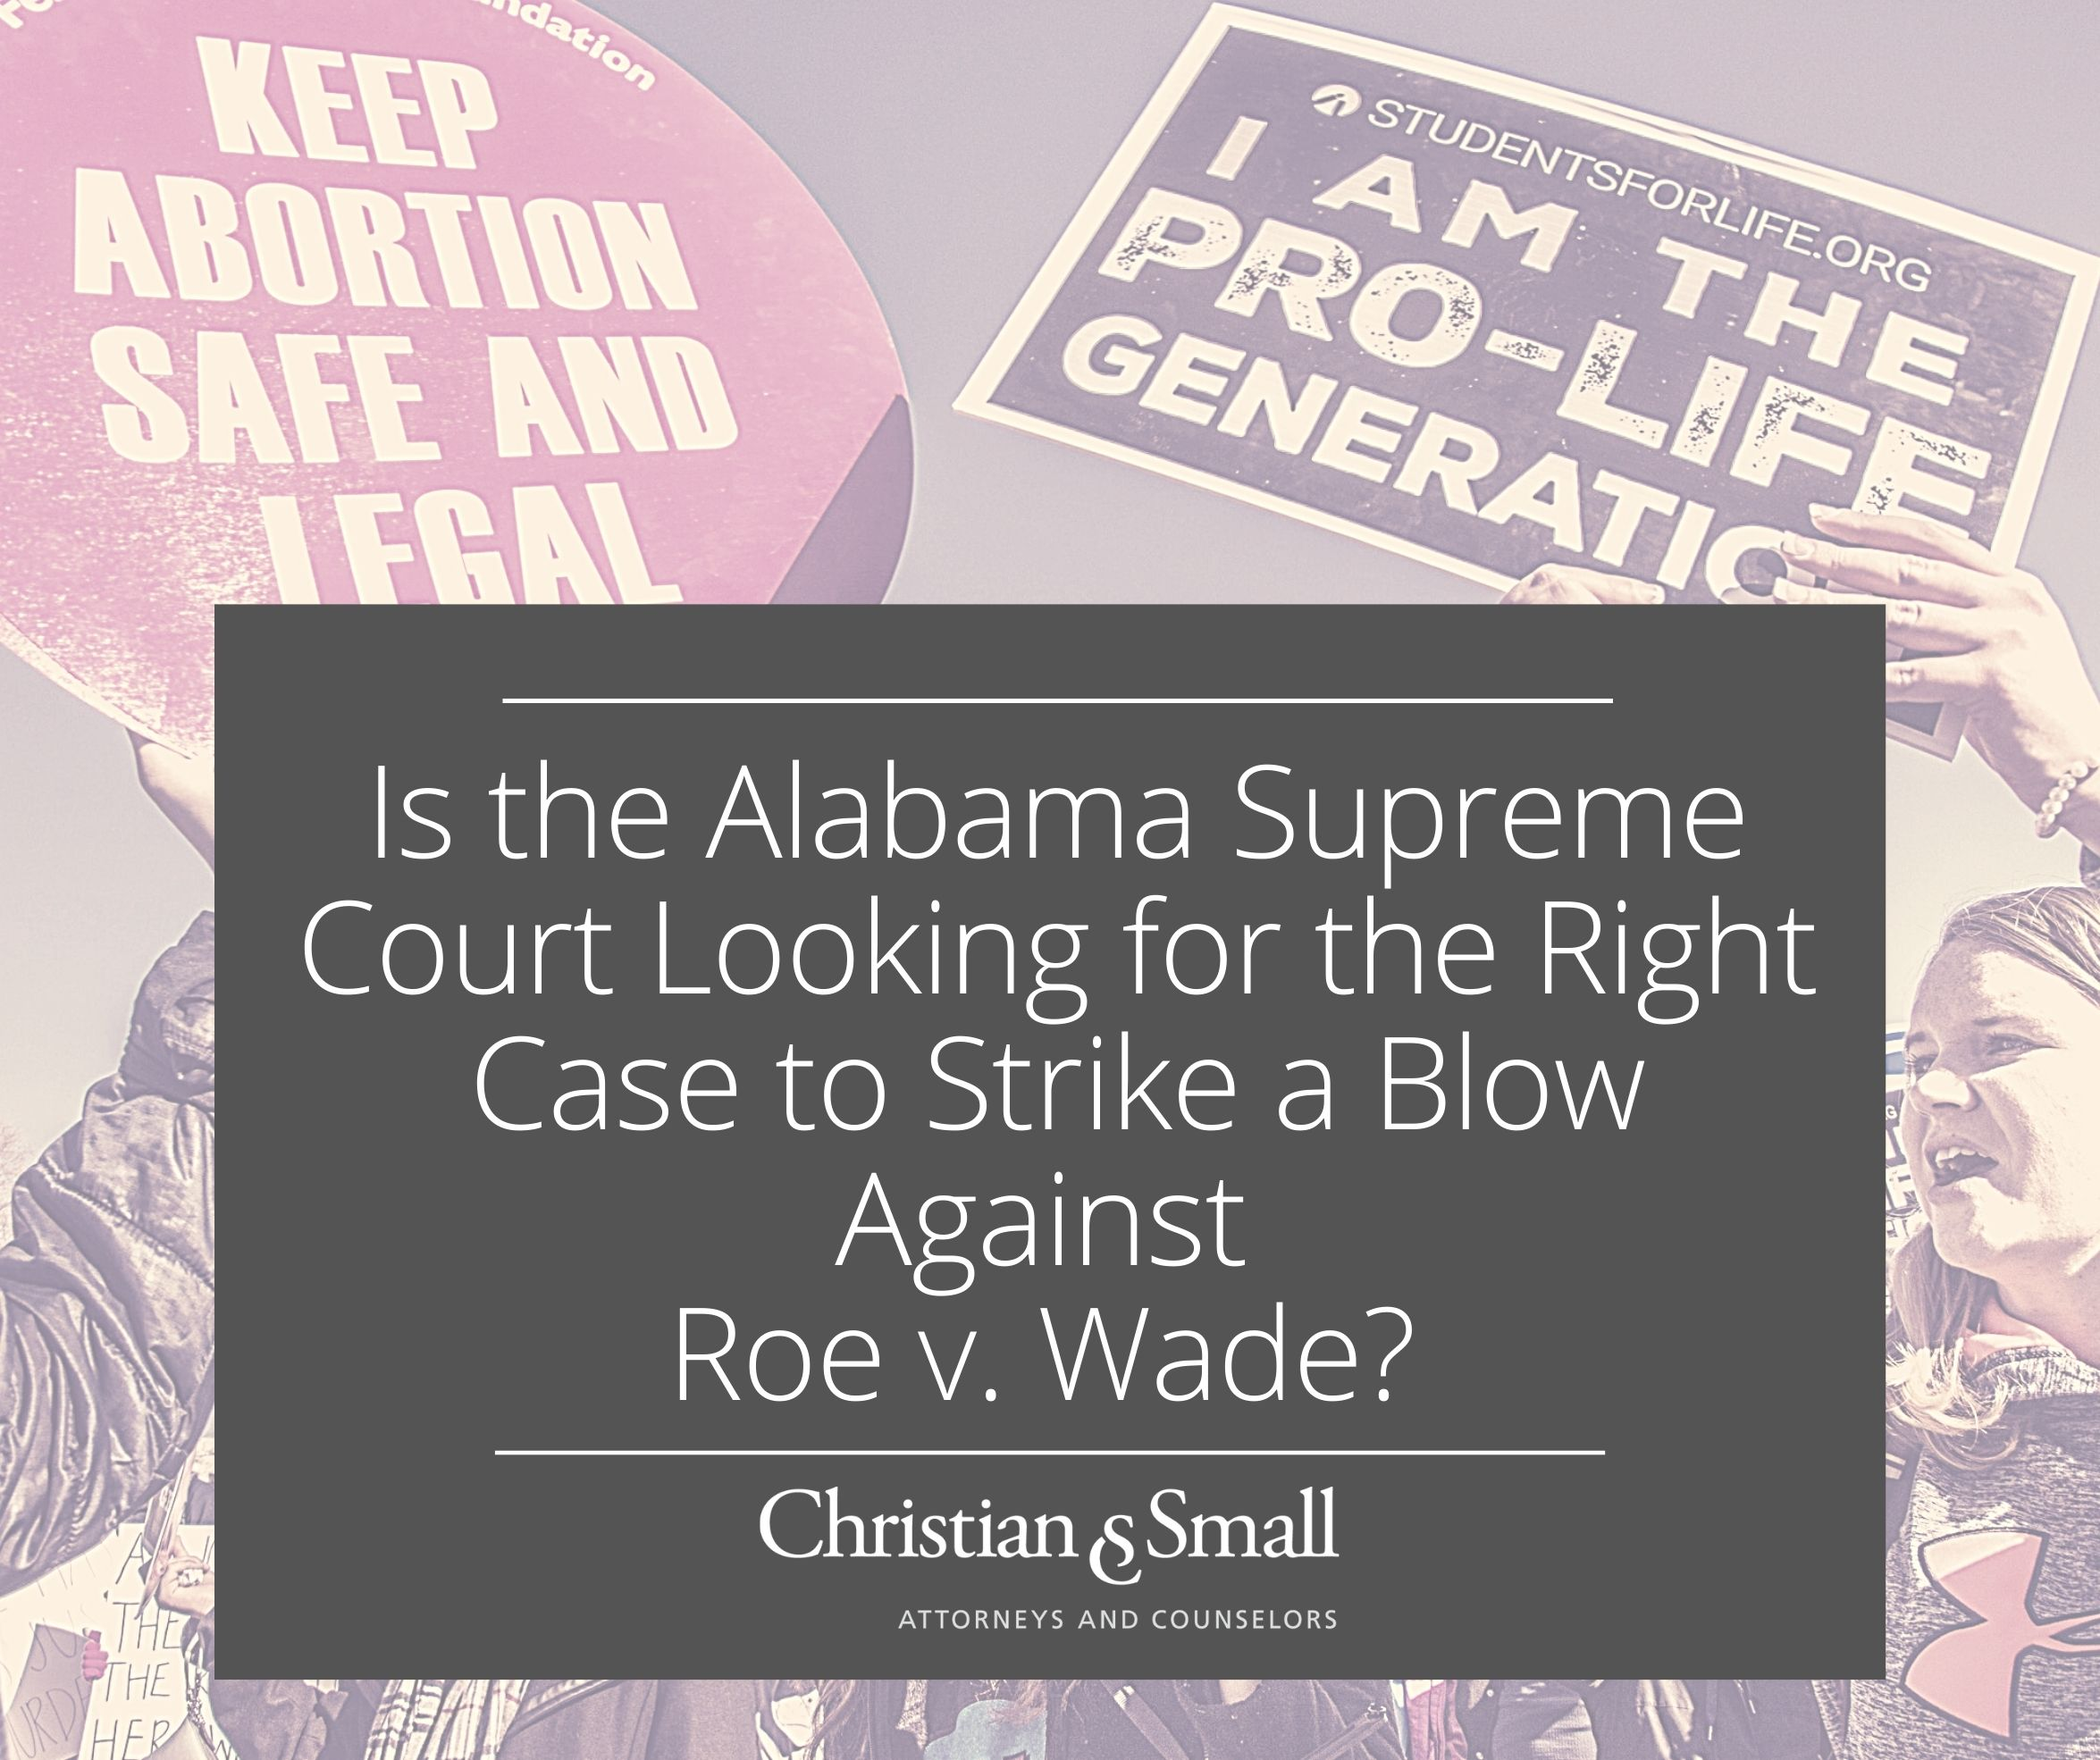 Is the Alabama Supreme Court Looking for the Right Case to Strike a Blow Against Roe v. Wade?